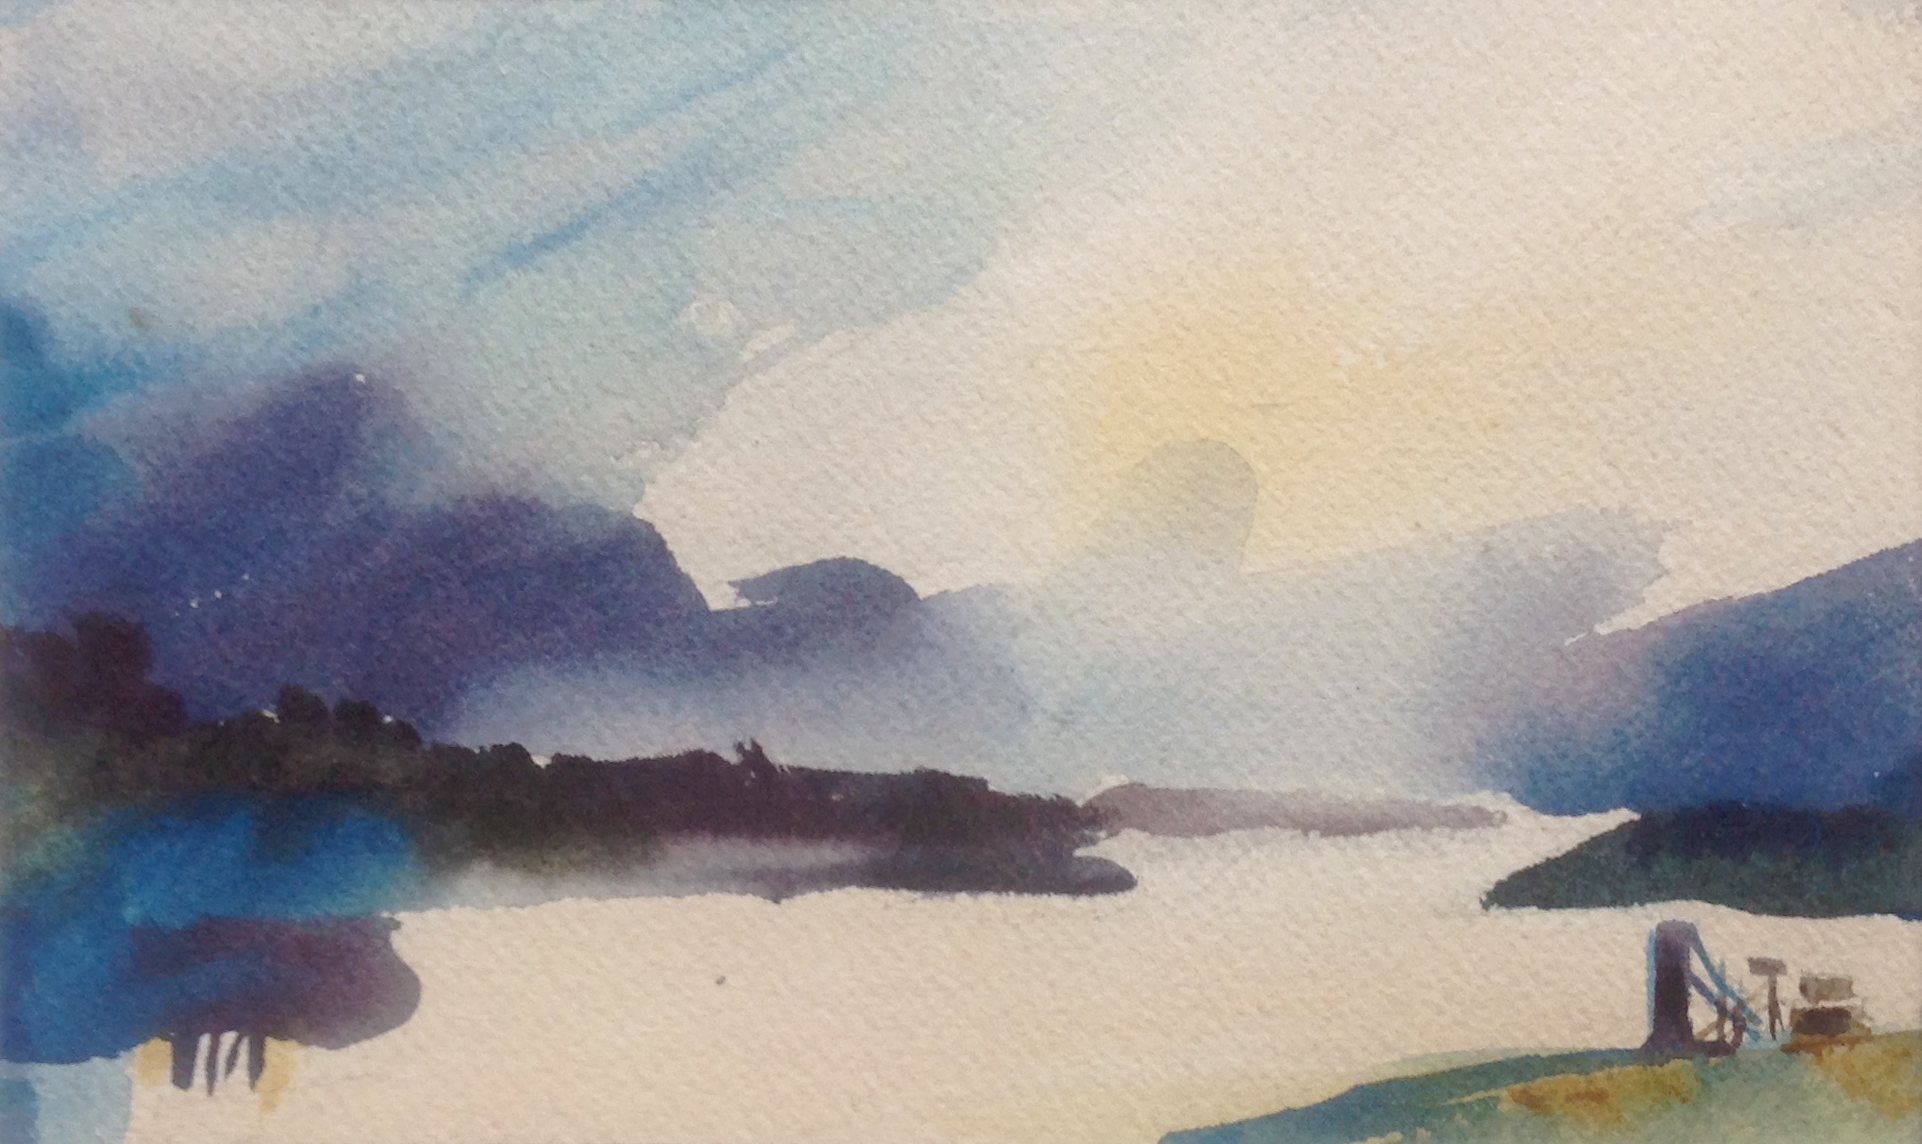 Inlet At Twilight - 5 x 8 - Collection of Will and Julie Reybold